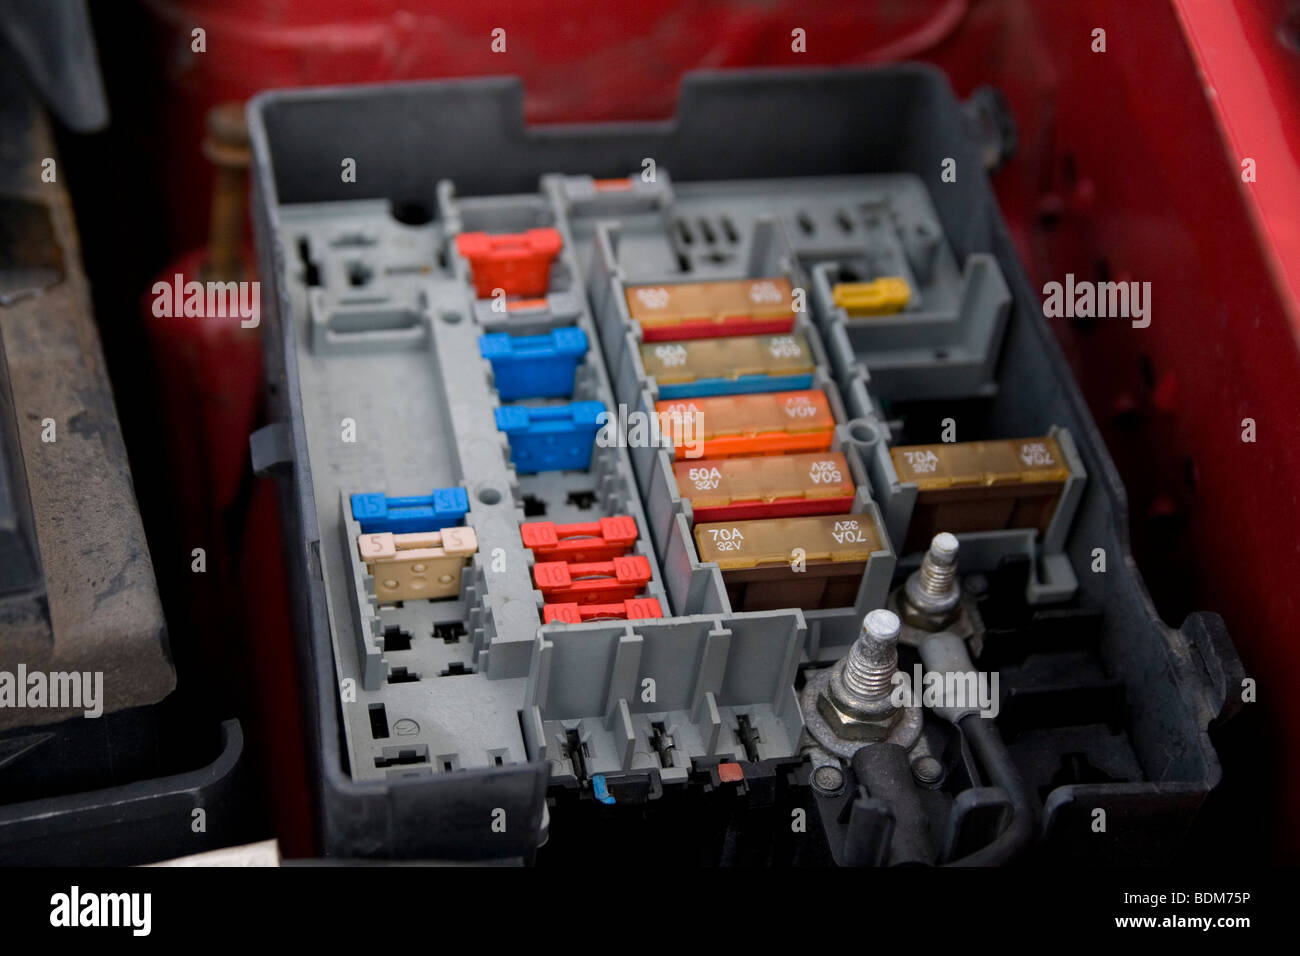 Citroen Berlingo Van Fuse Box Diagram Another Blog About Wiring Jbod Auto Electrical Rh Nottingham Edu De Ialivre Uk